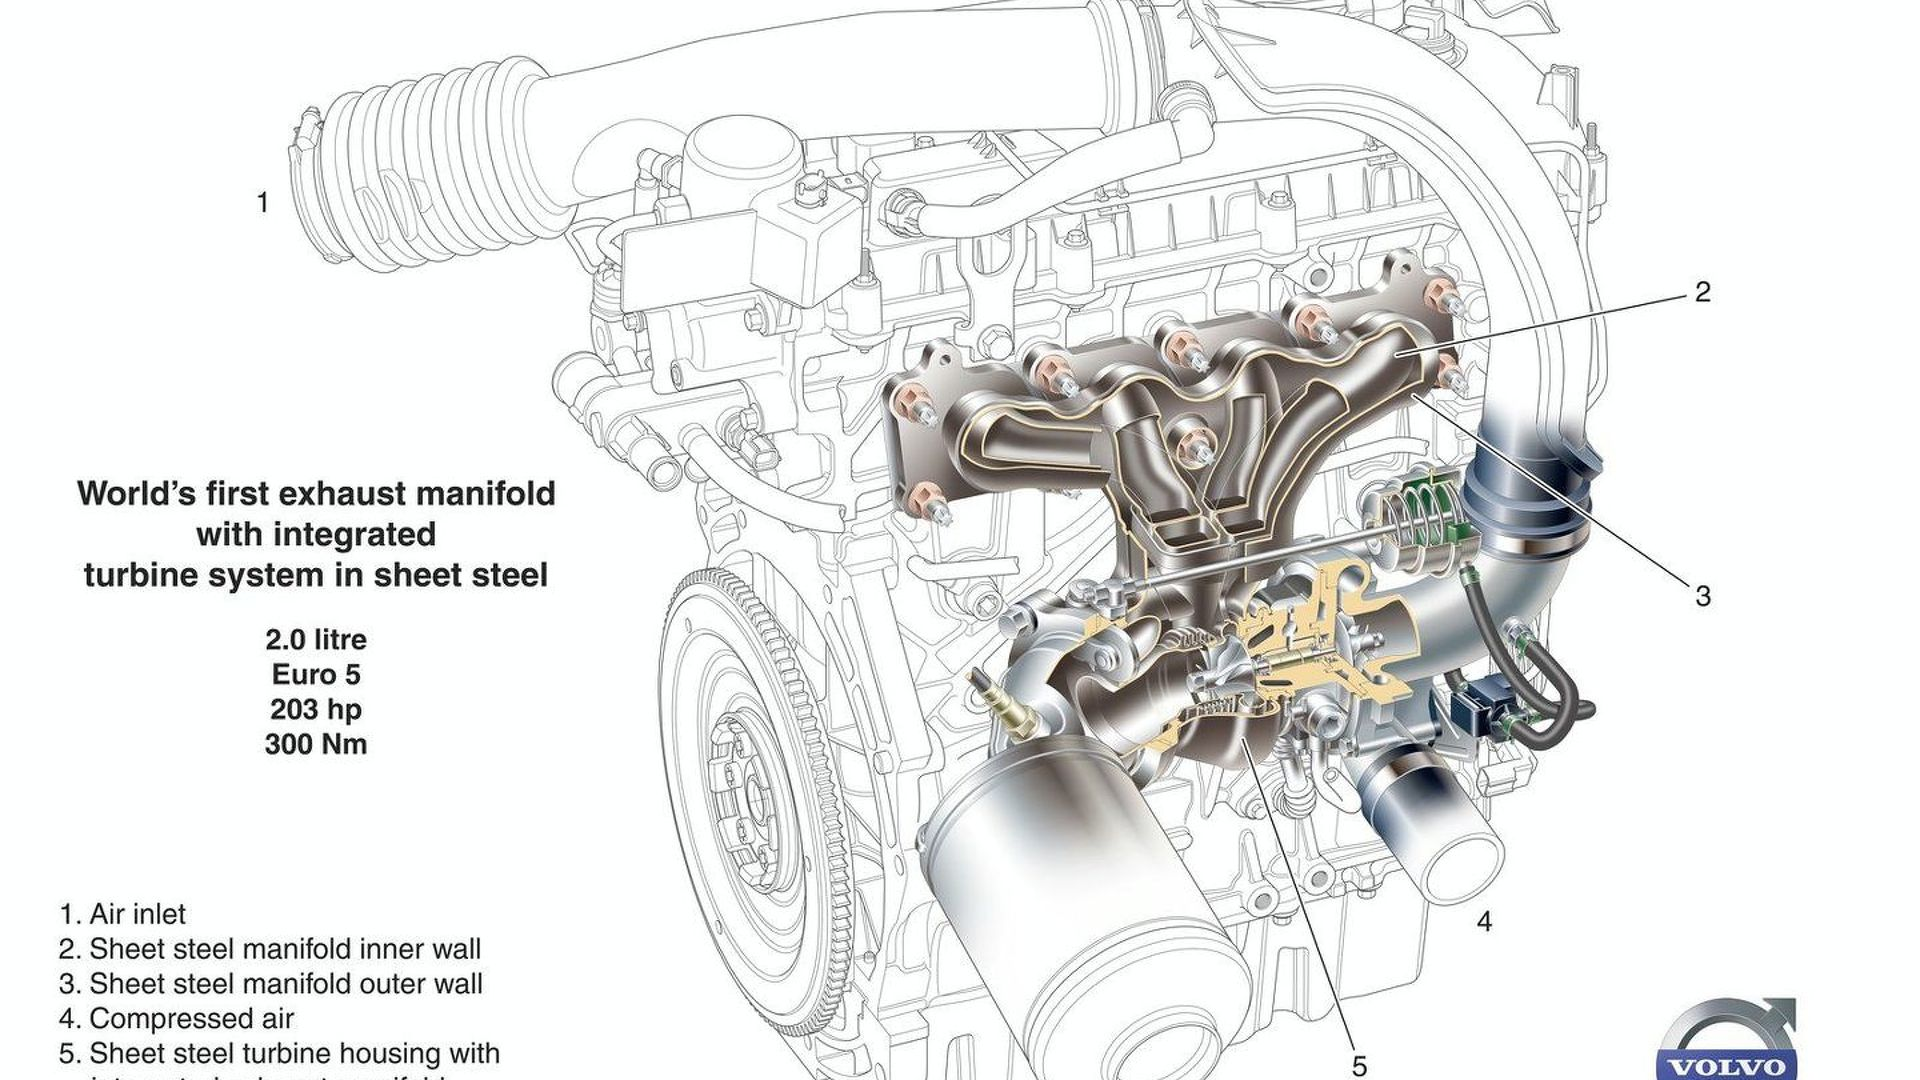 hight resolution of 2012 volvo xc60 engine diagram wiring diagram expert volvo xc60 engine diagram